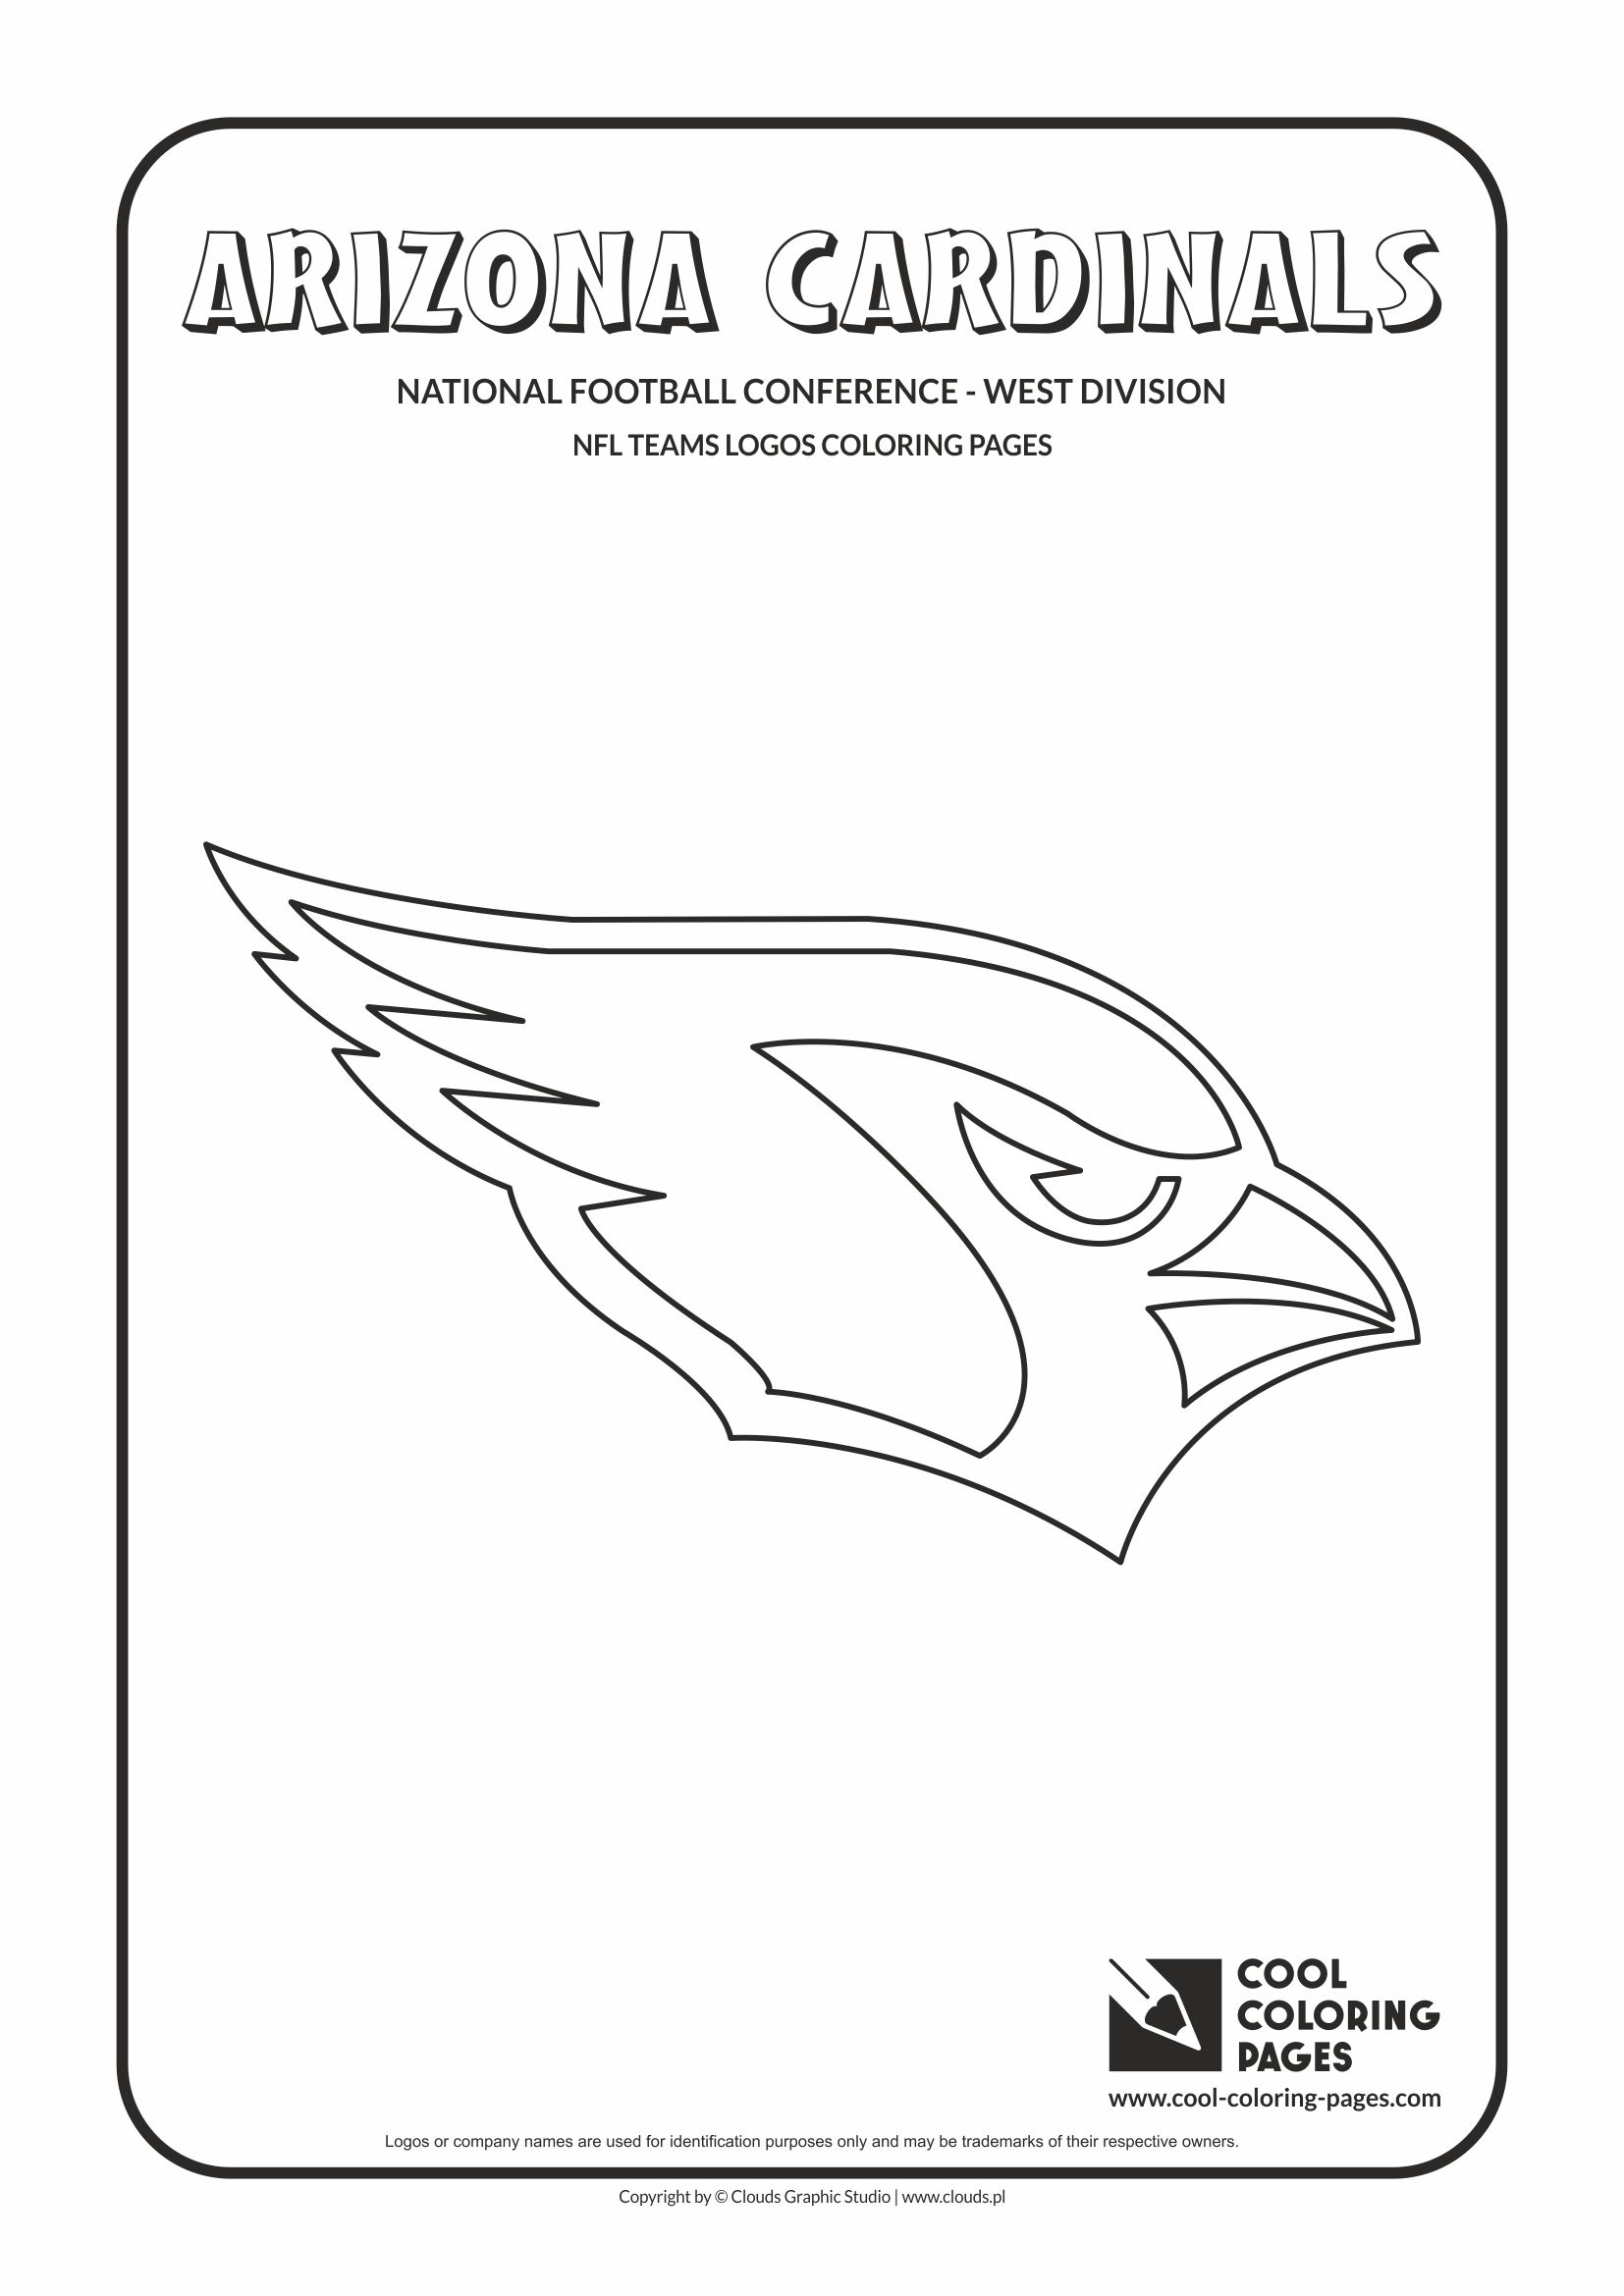 az cardinals coloring pages - photo #21